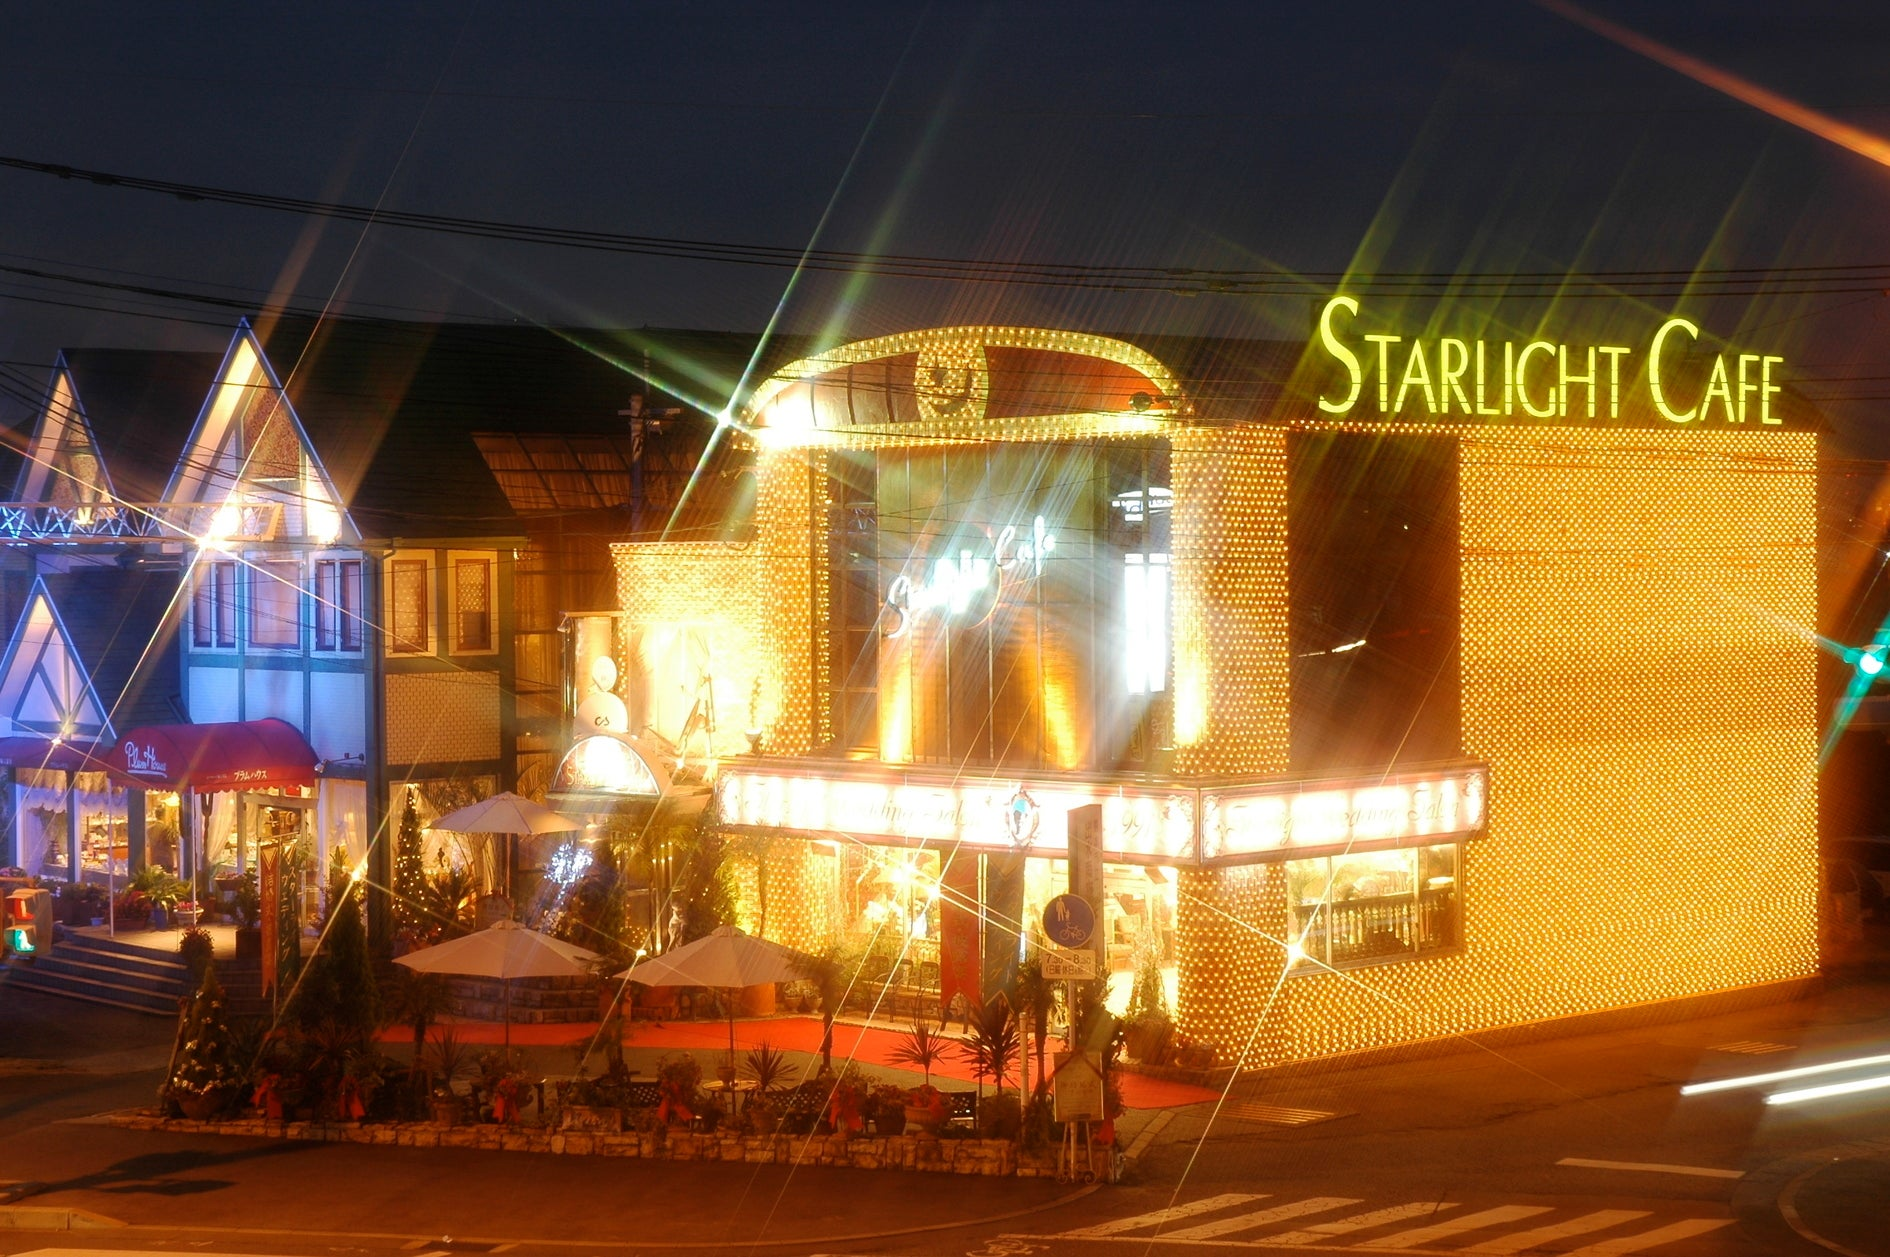 STARLIGHT CAFE 1階 の写真